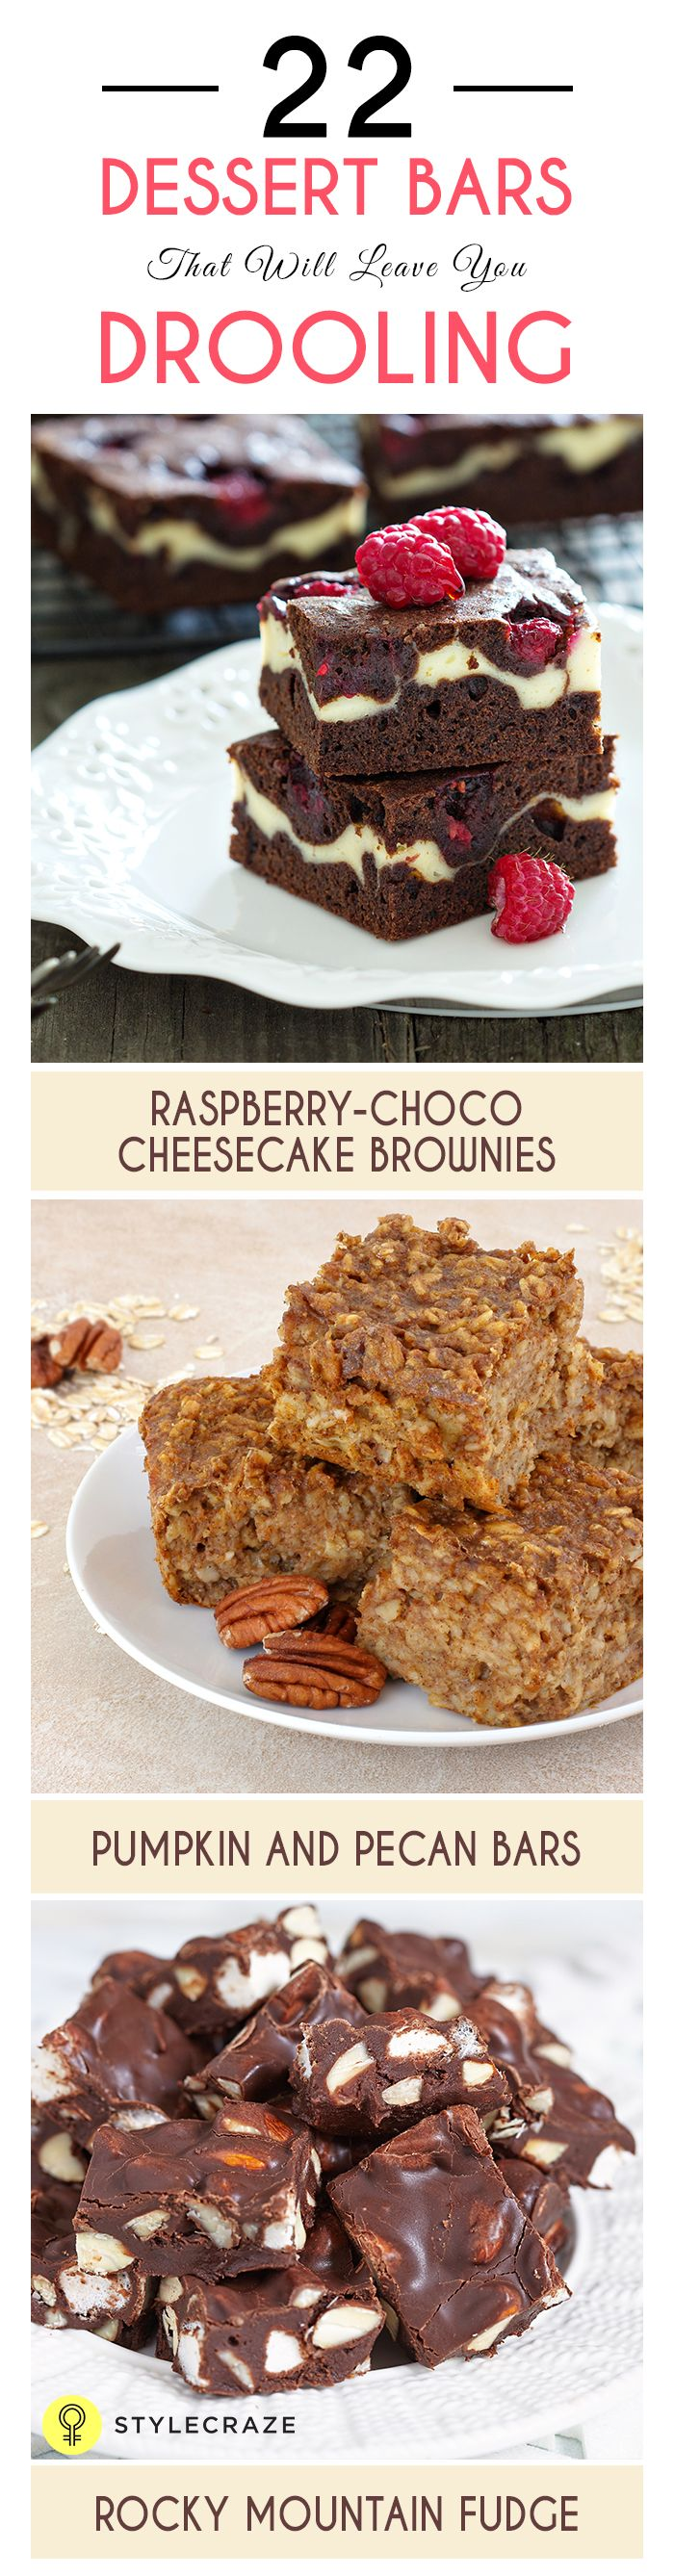 Who aren't a fan of Delicious dessert bars. Starting from Snickers to Raspberry bars we all love having them. Take a look at these Dessert bars and check if you've tried them!